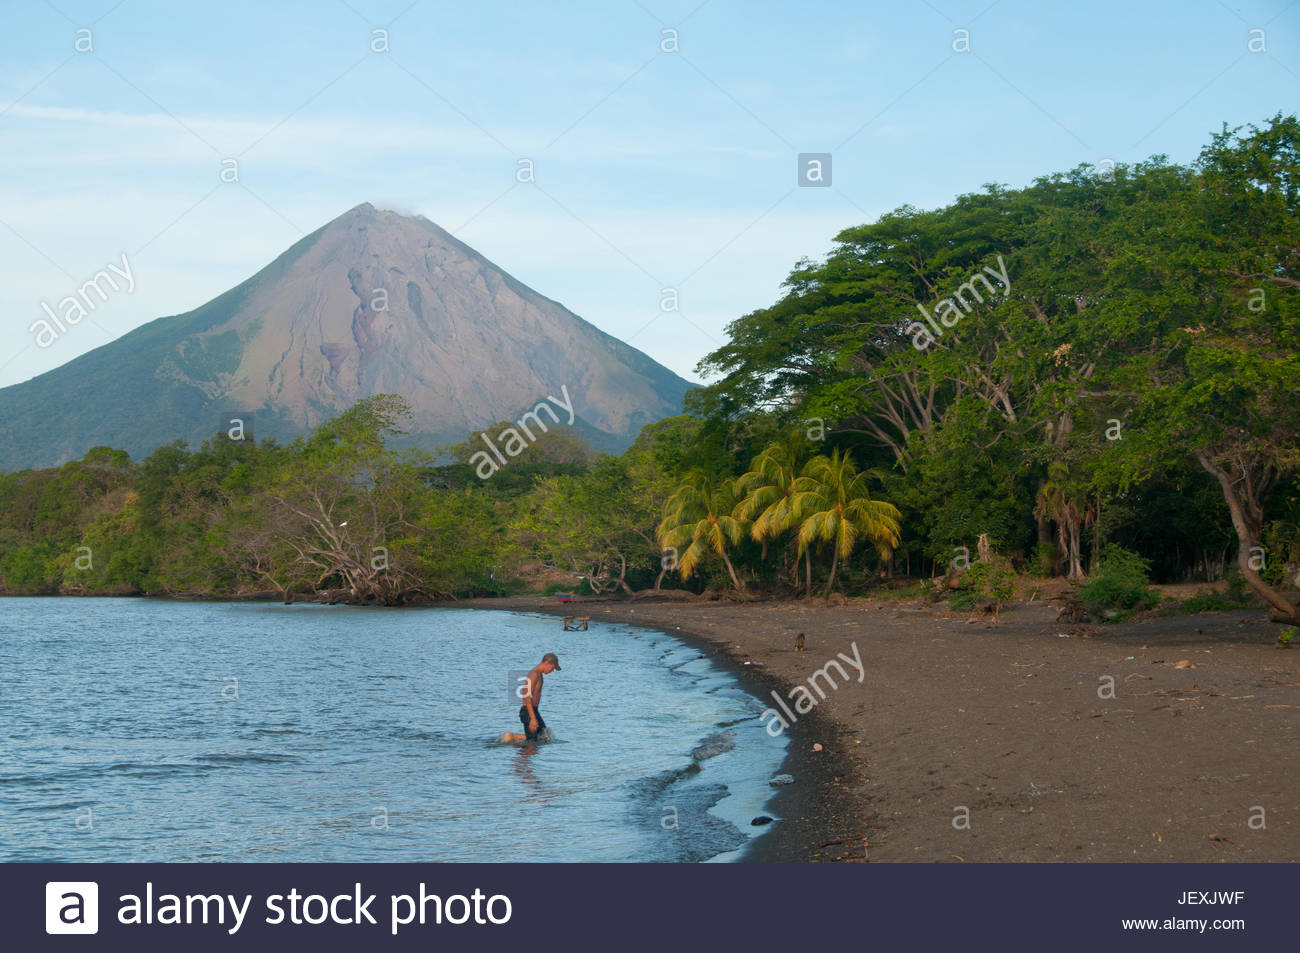 Locals from the Ometepe Island swimming in Lake Cocibolca, or Lake Nicaragua. - Stock Image